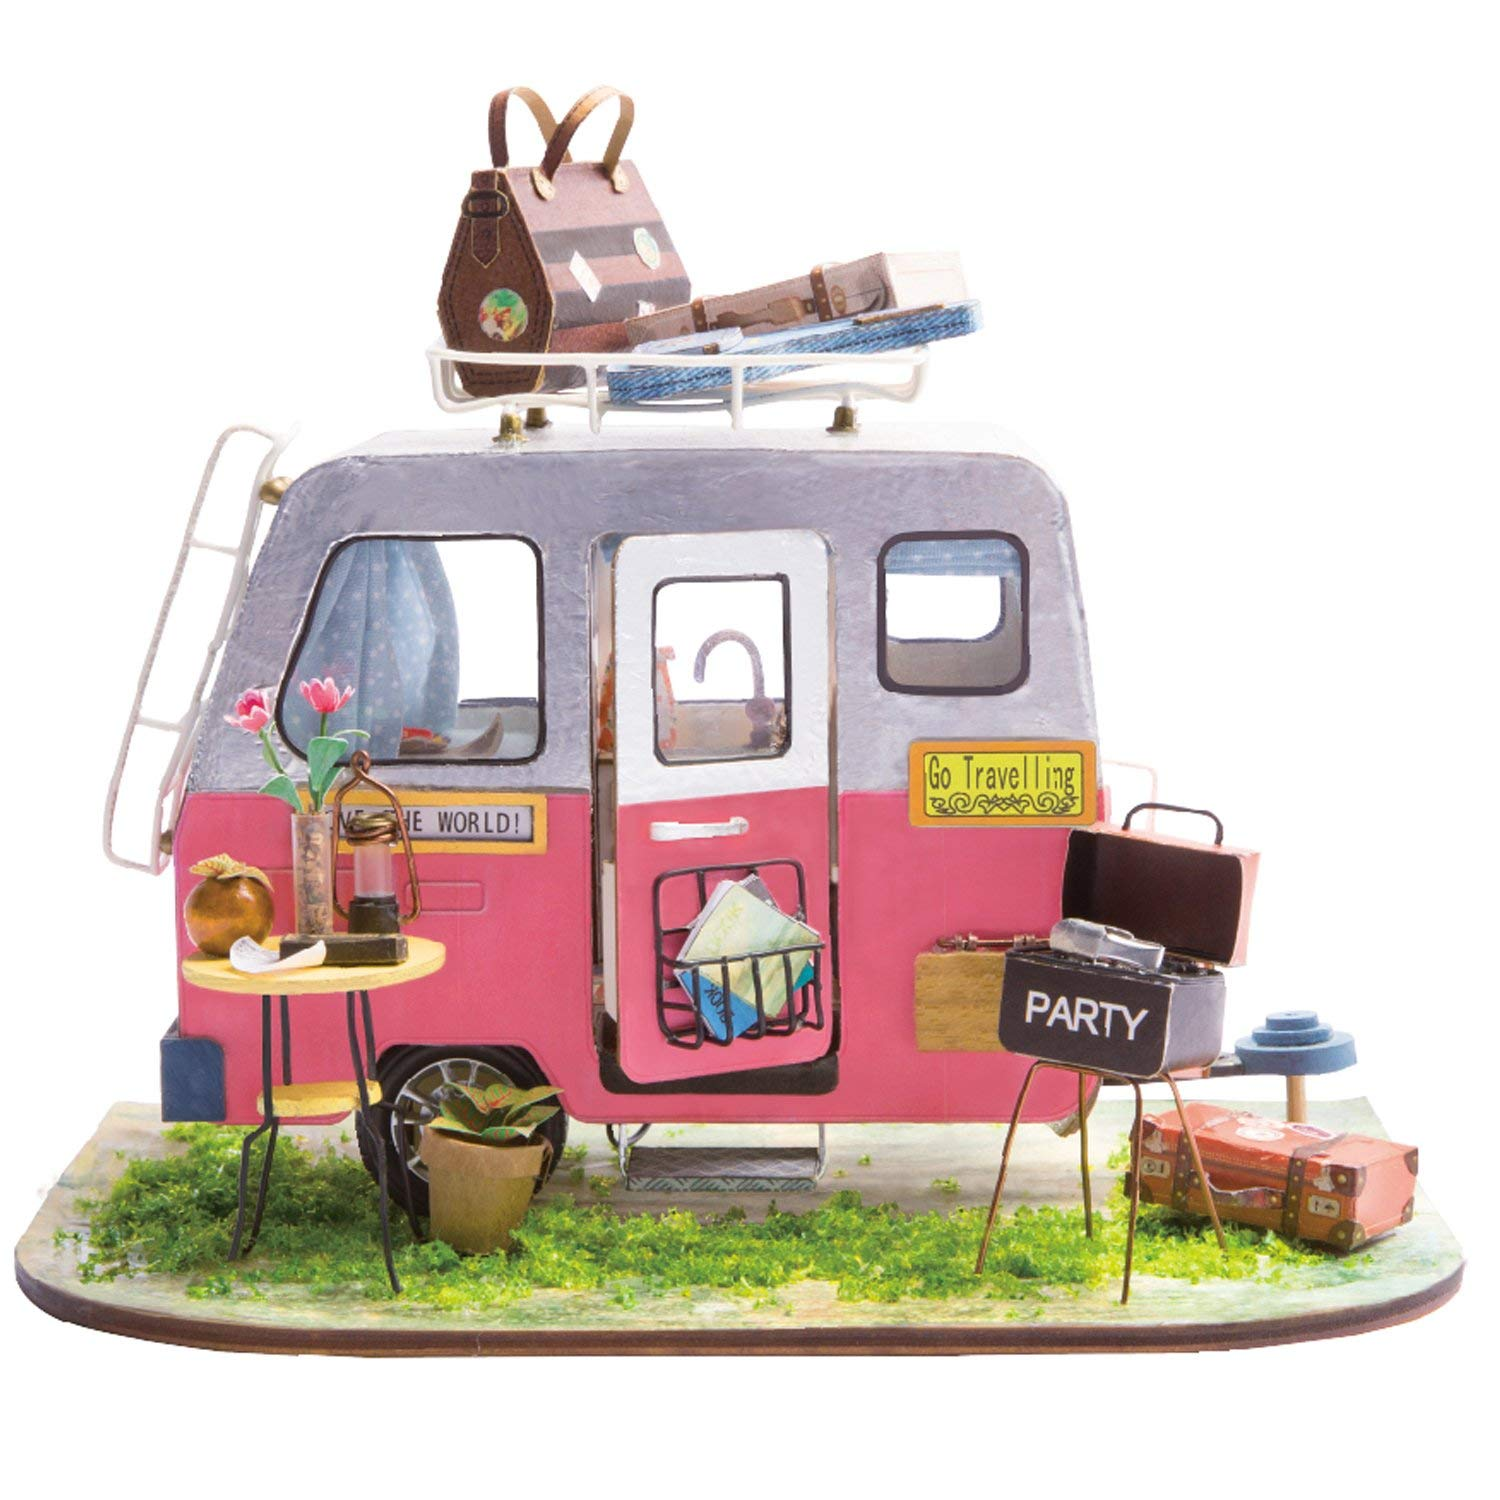 Rolife Mini Diy House Kit-Woodcraft Construction Kit-Wooden Model Building Set-Mini House Crafts-Creative Birthday Mothers Day Gift For Boys Girls Women and Friends(Camper)